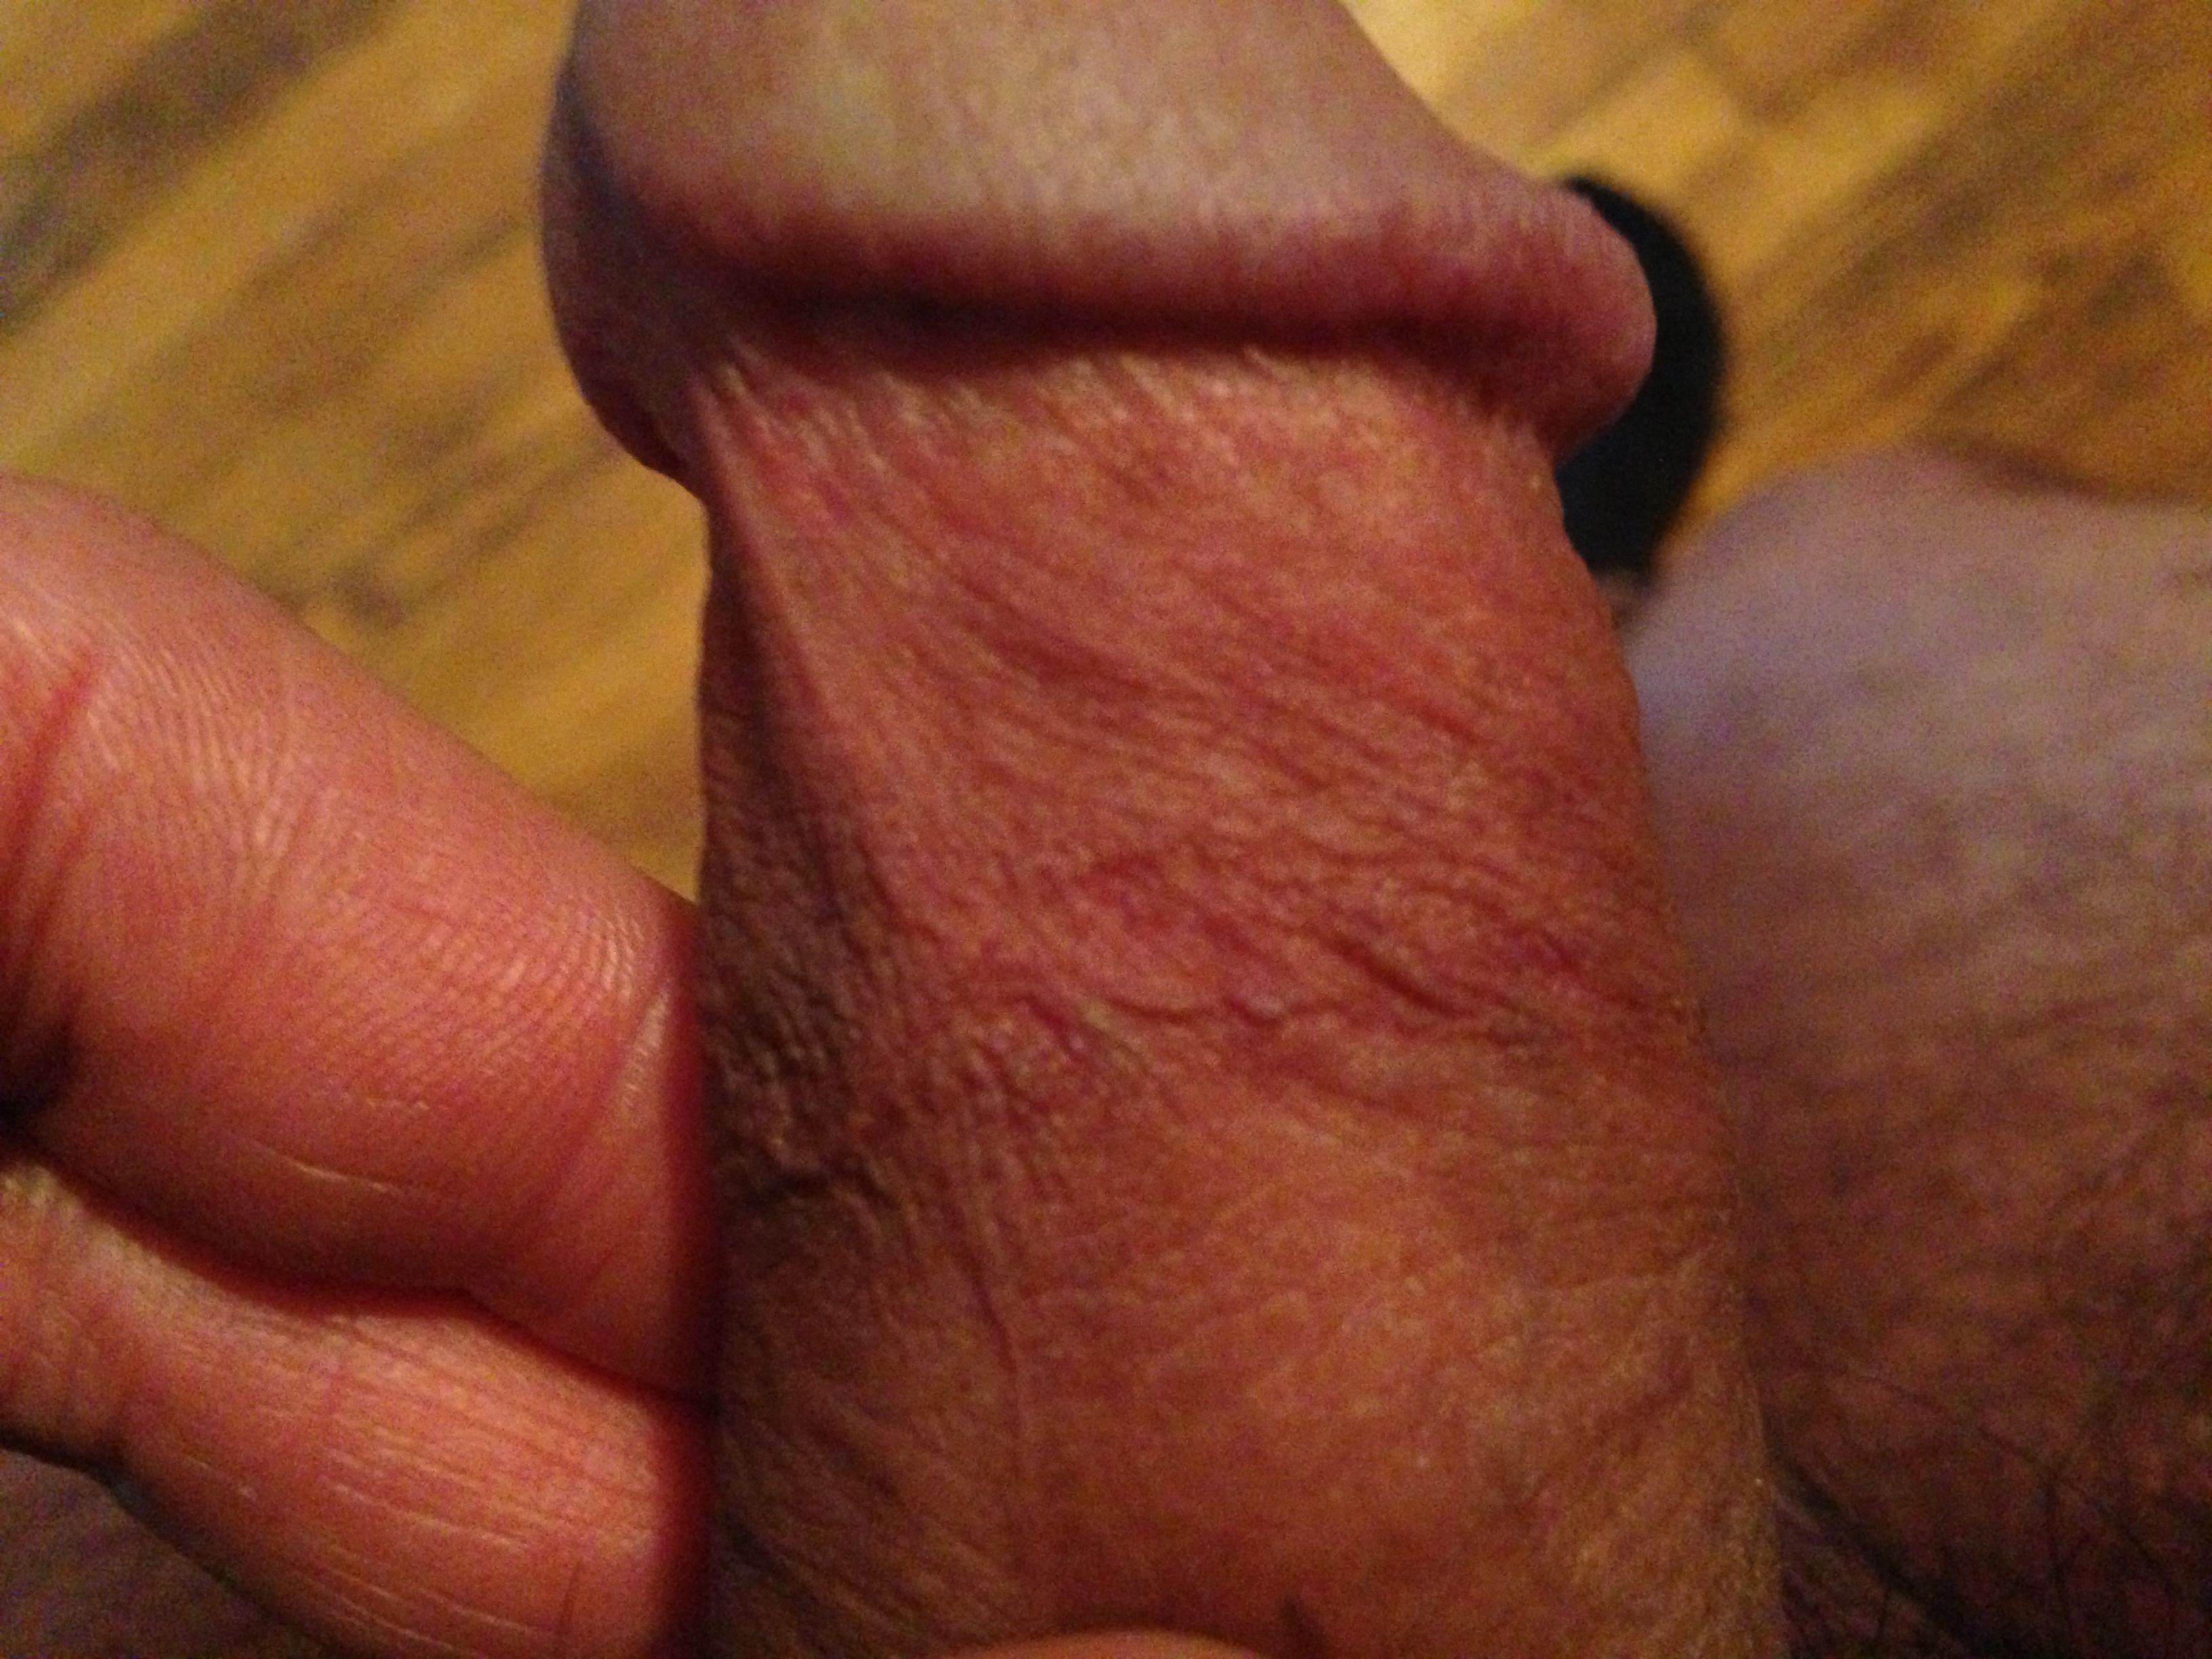 Bruise On Penis 115